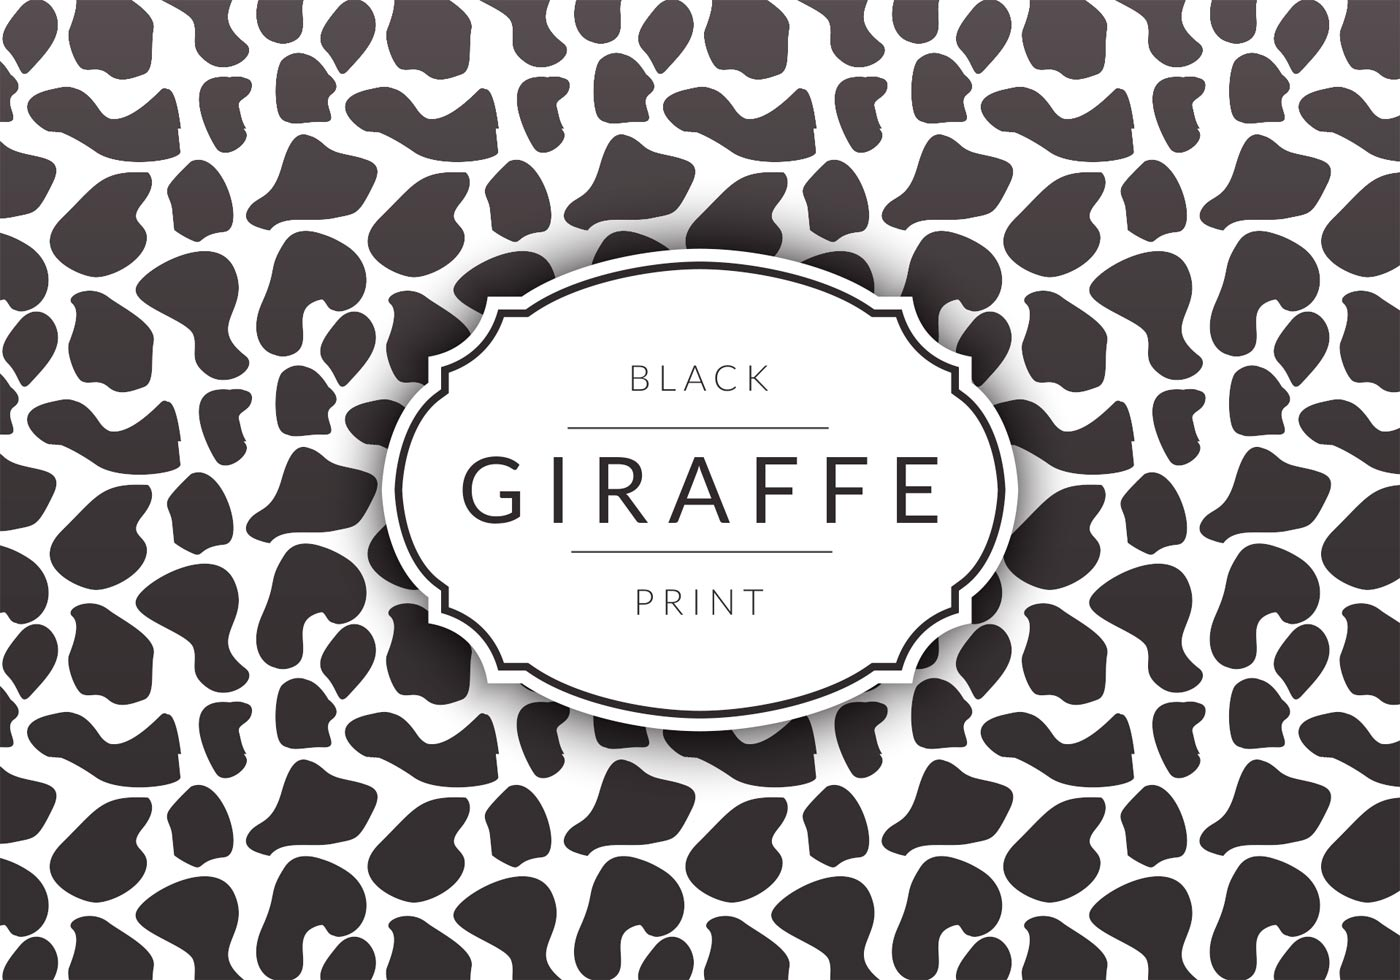 Free black giraffe print vector background download free vector art stock graphics images